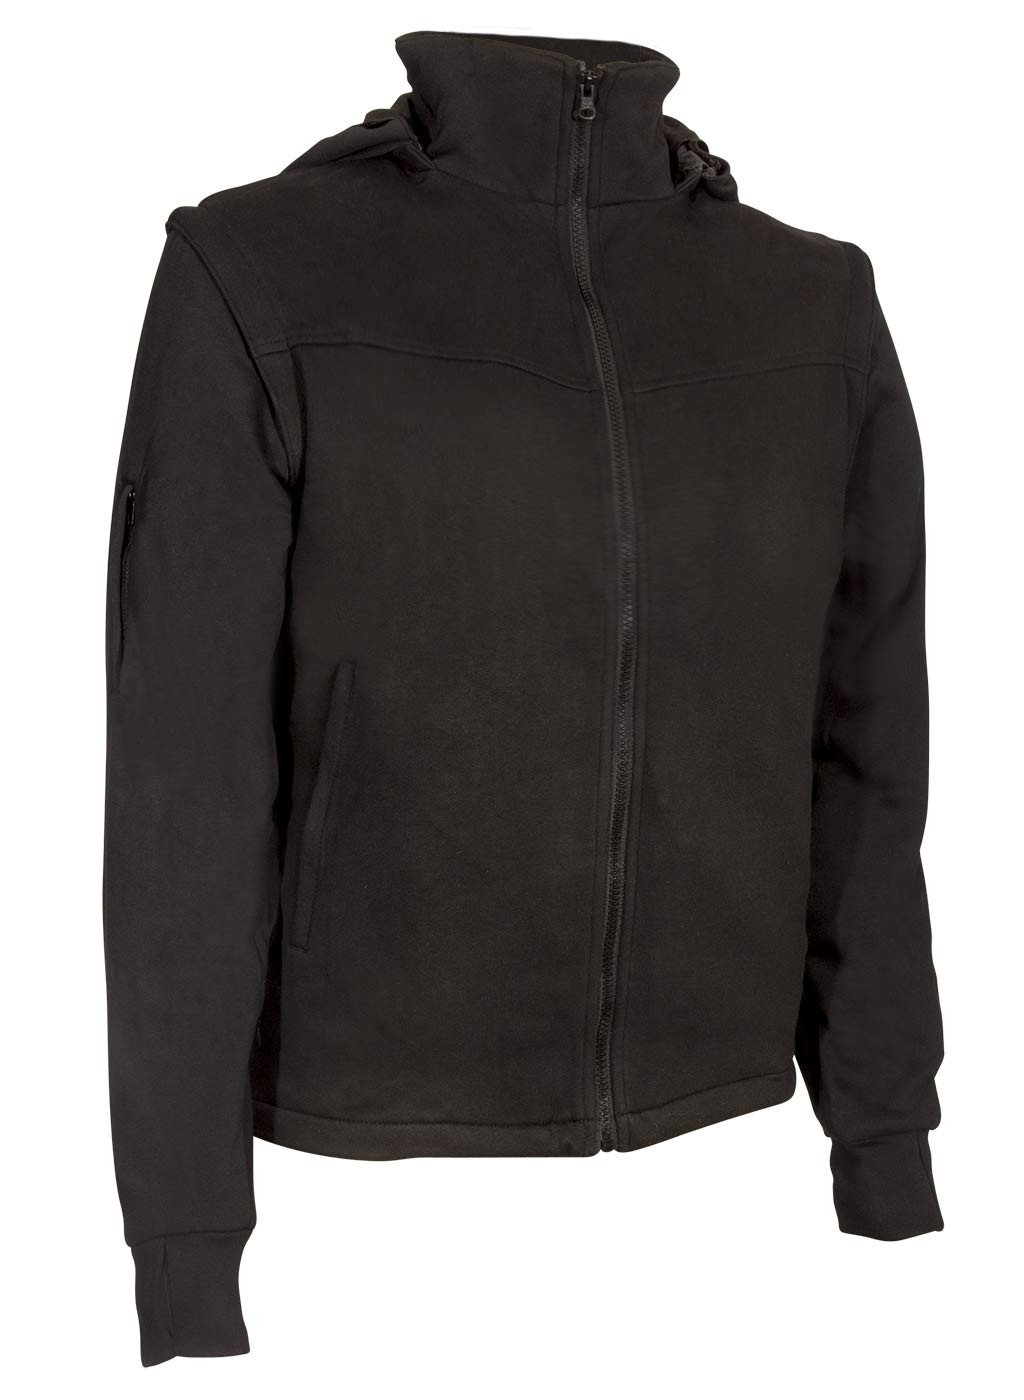 black sweat shirt mens travel jacket